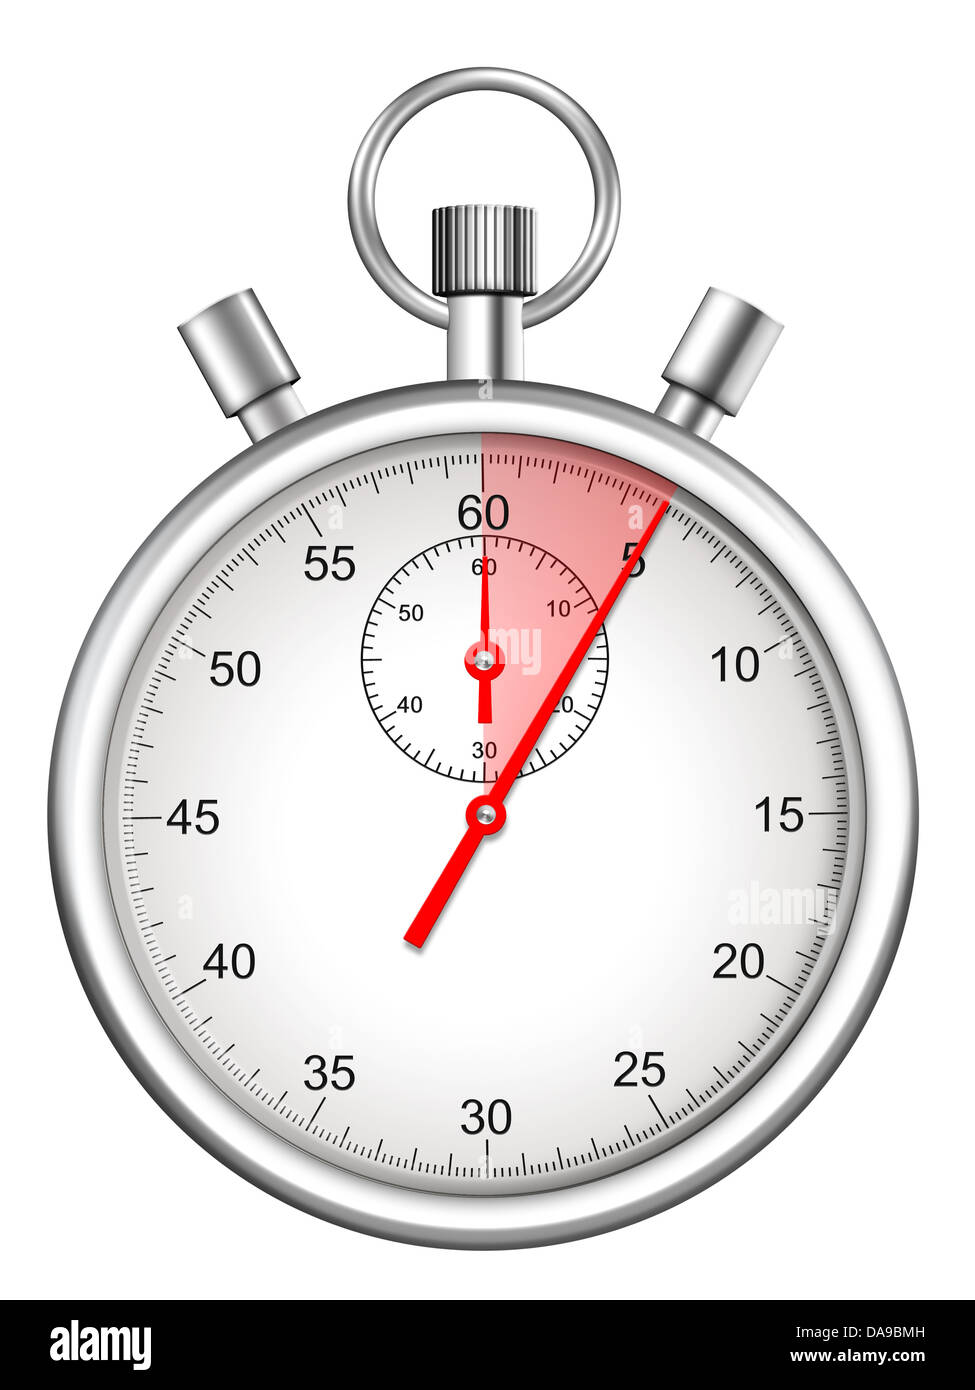 stopwatch with five seconds period highlighted - Stock Image